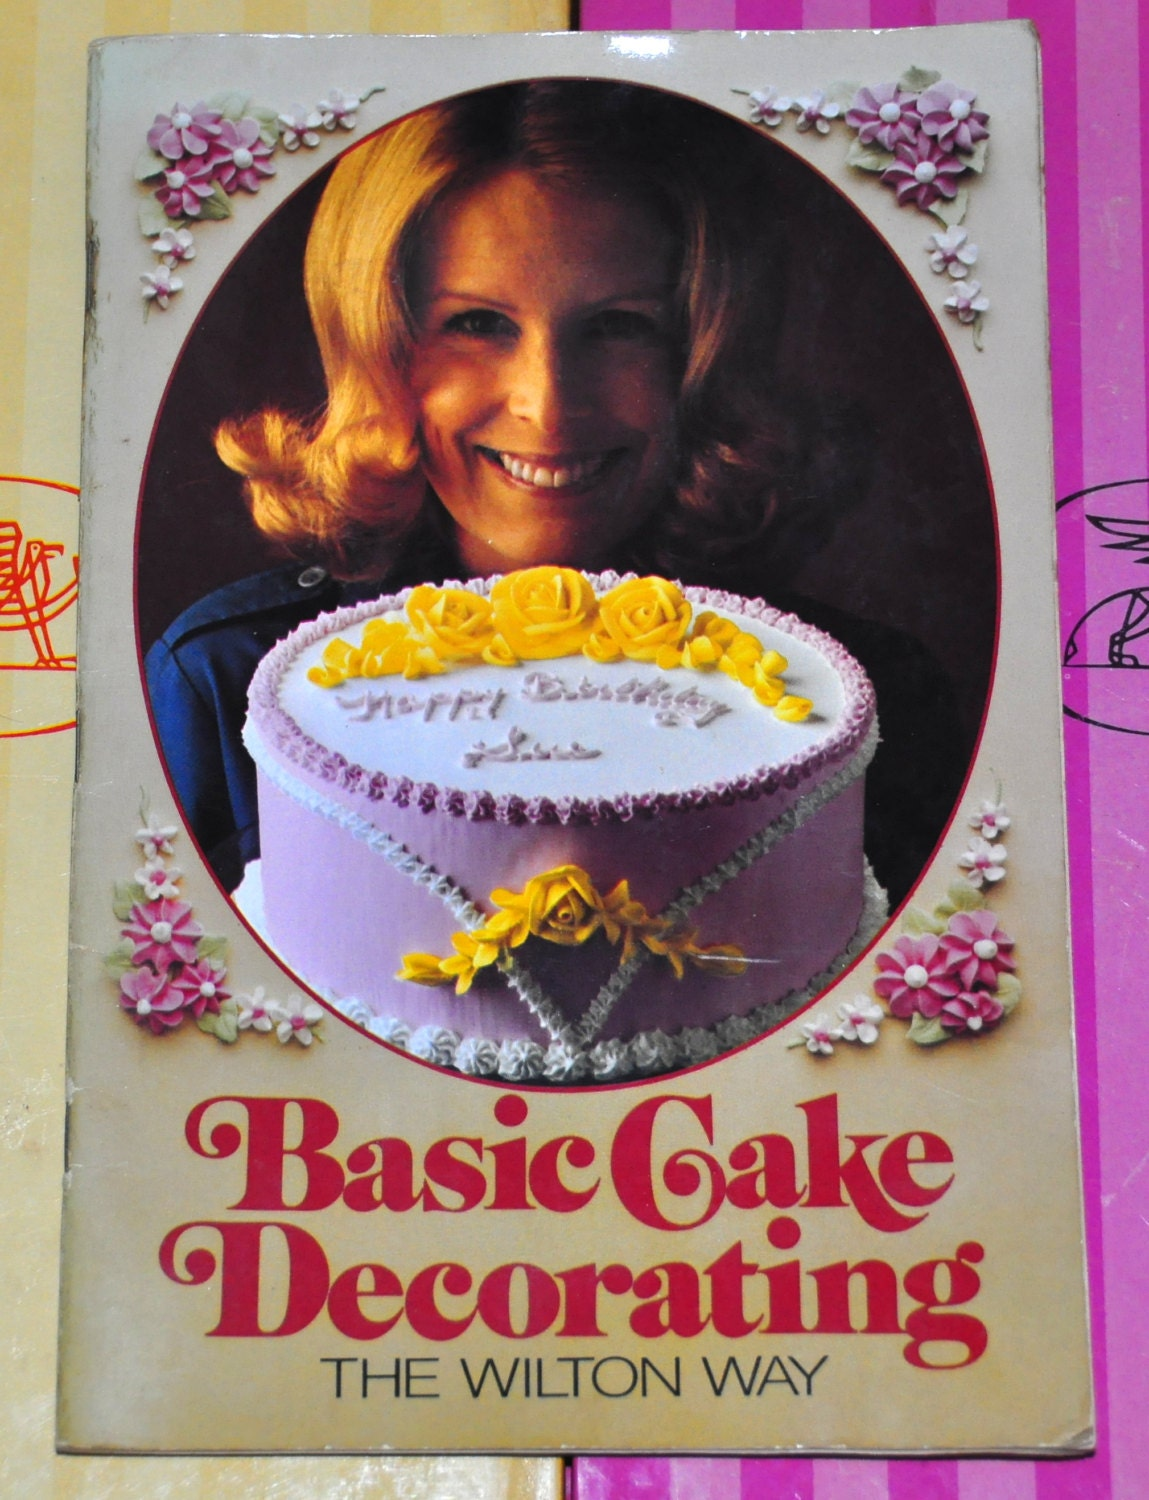 Cake Decorating The Basics : Wilton Cake Decorating. Basic Cake Decorating the Wilton Way.